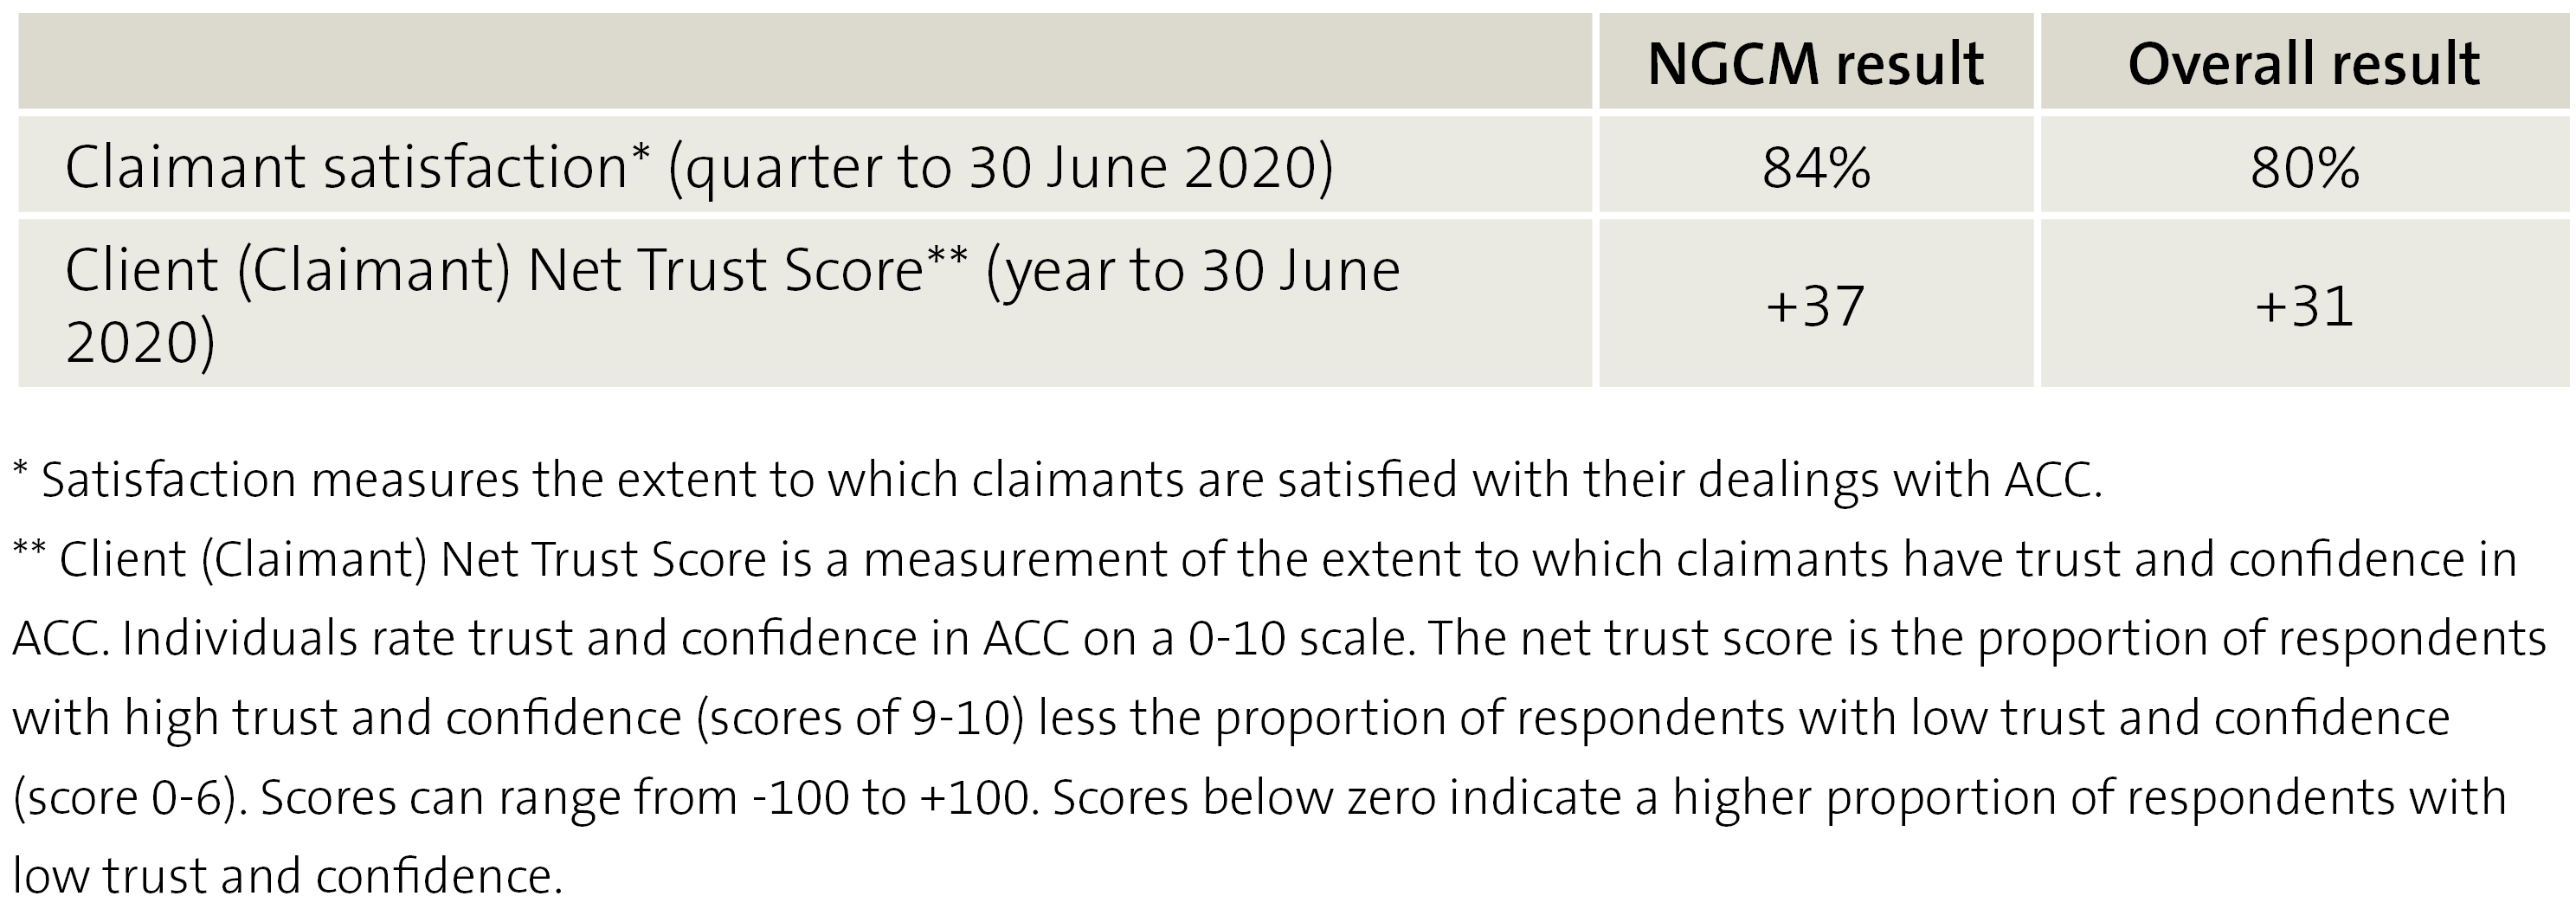 Figure 3 Comparing claimant experience results under NGCM and overall results across all cases